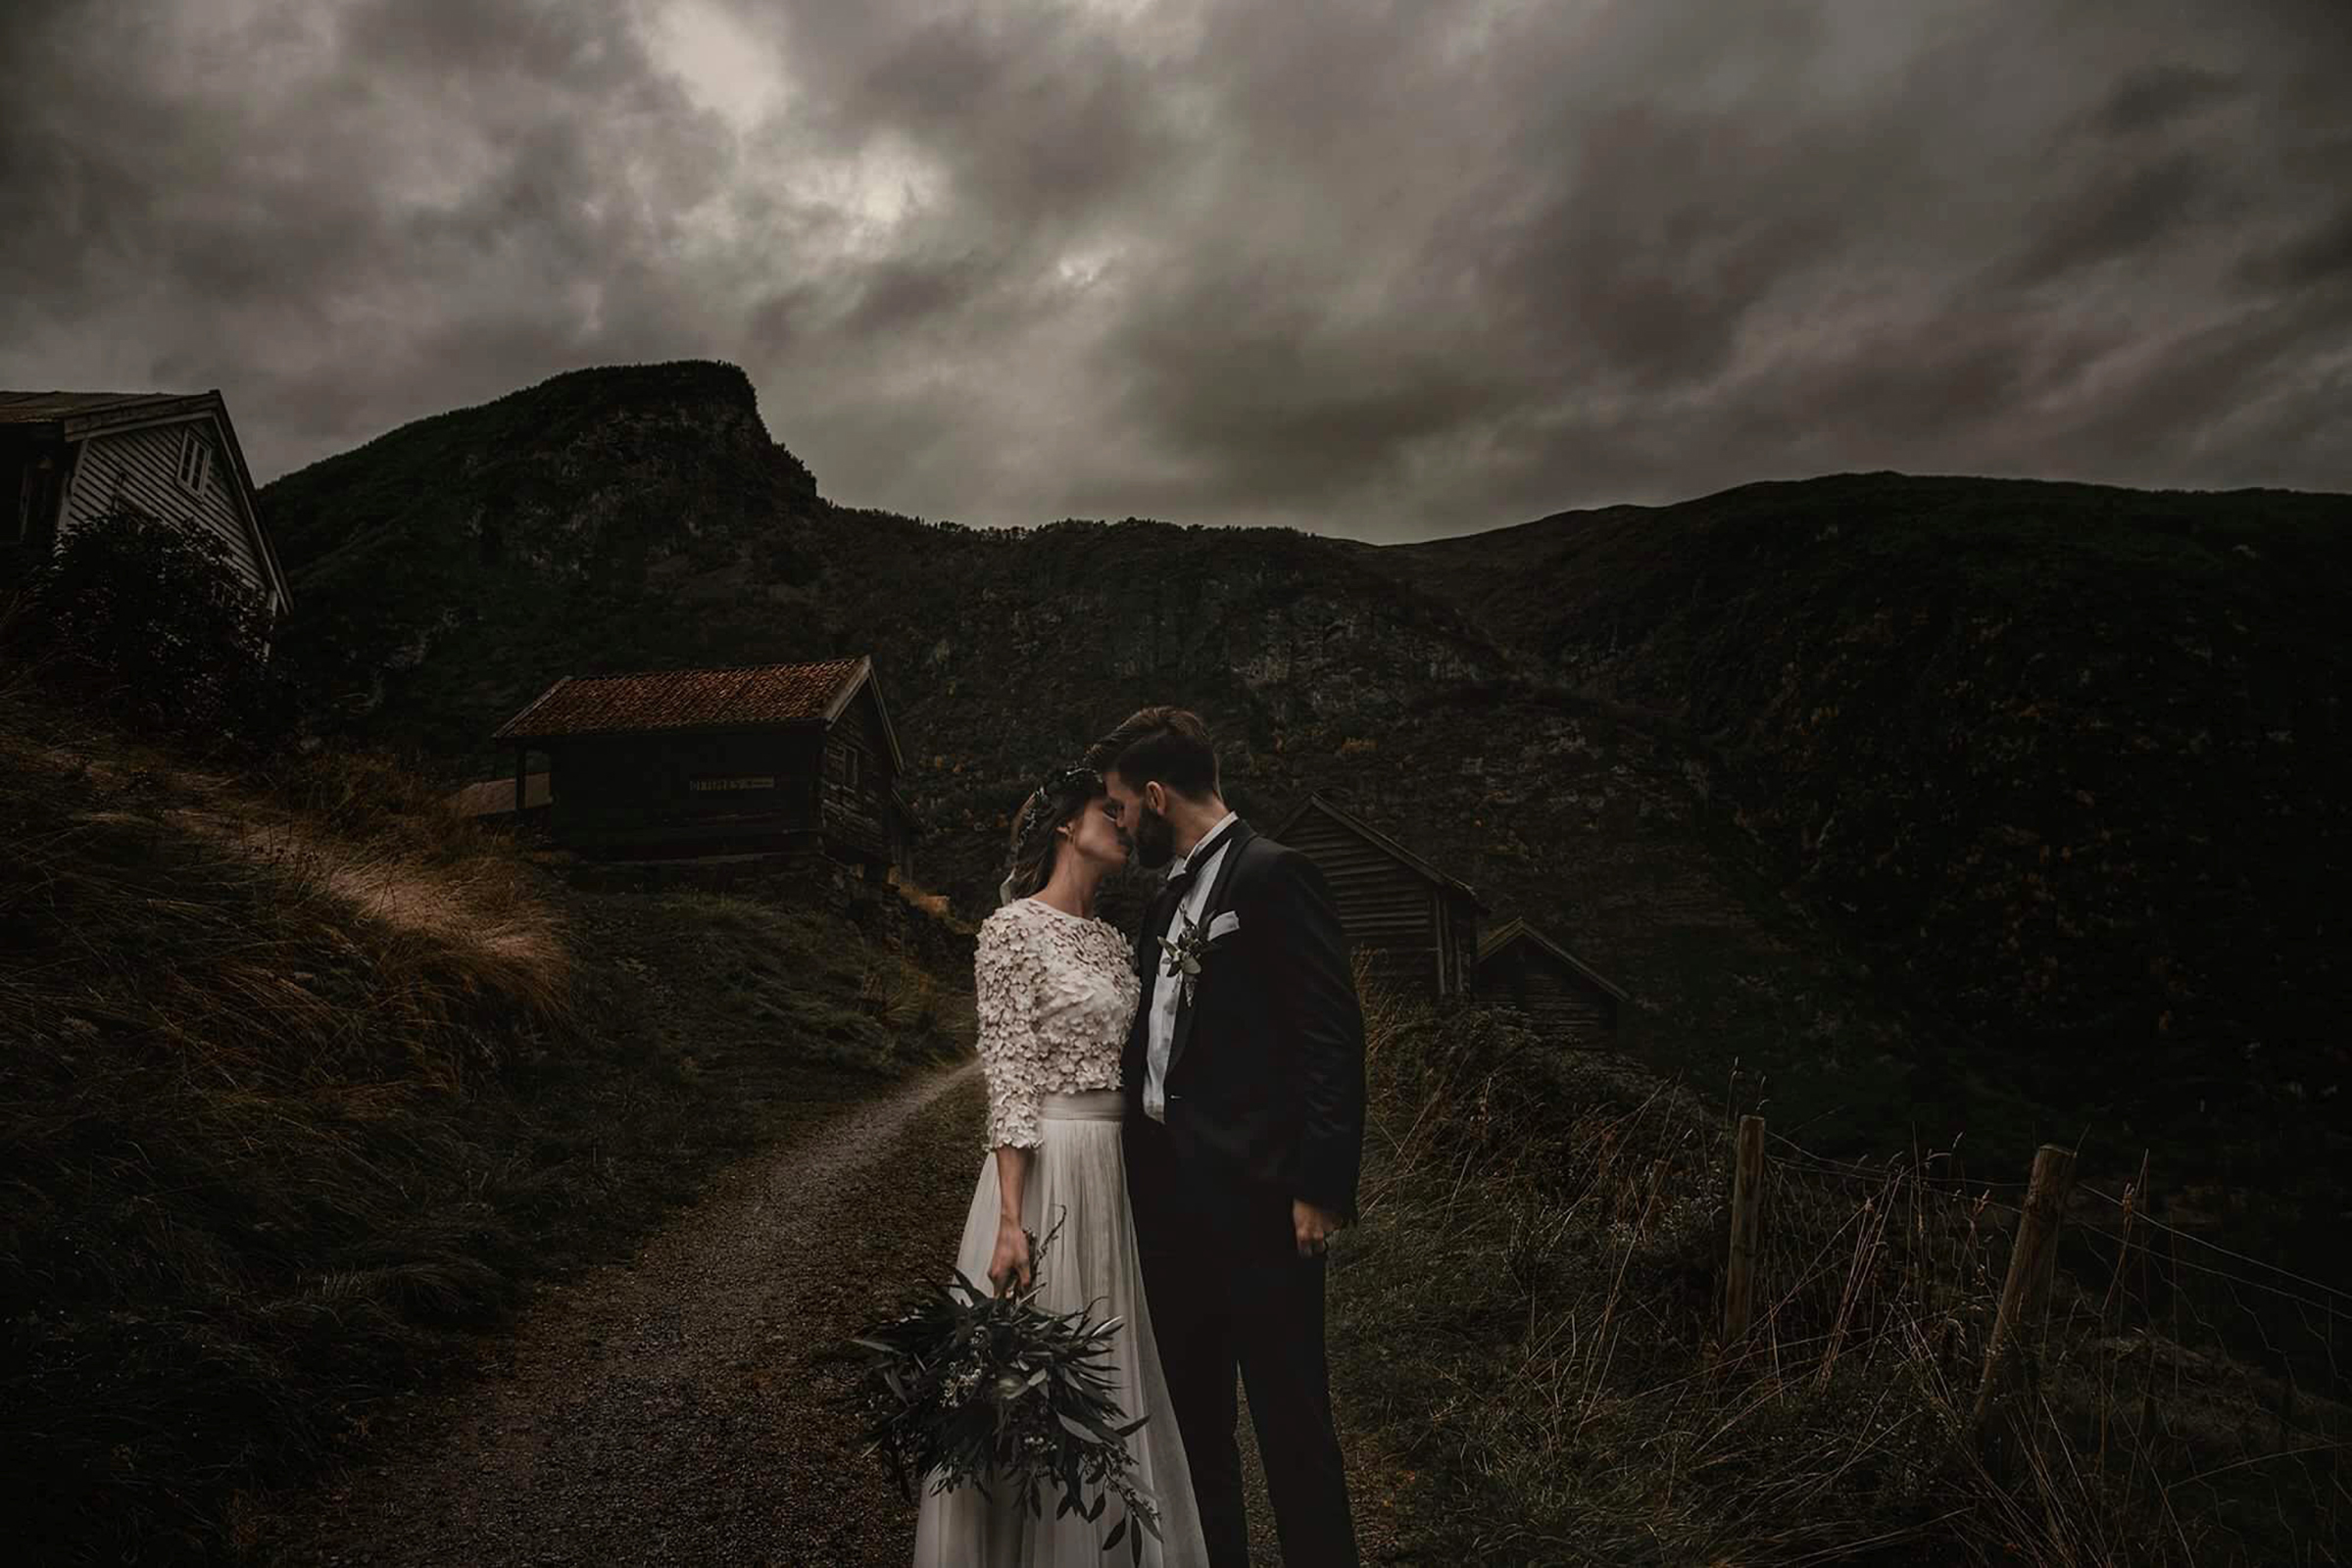 Kiss in stormy rustic mountain setting - photo by Frøydis